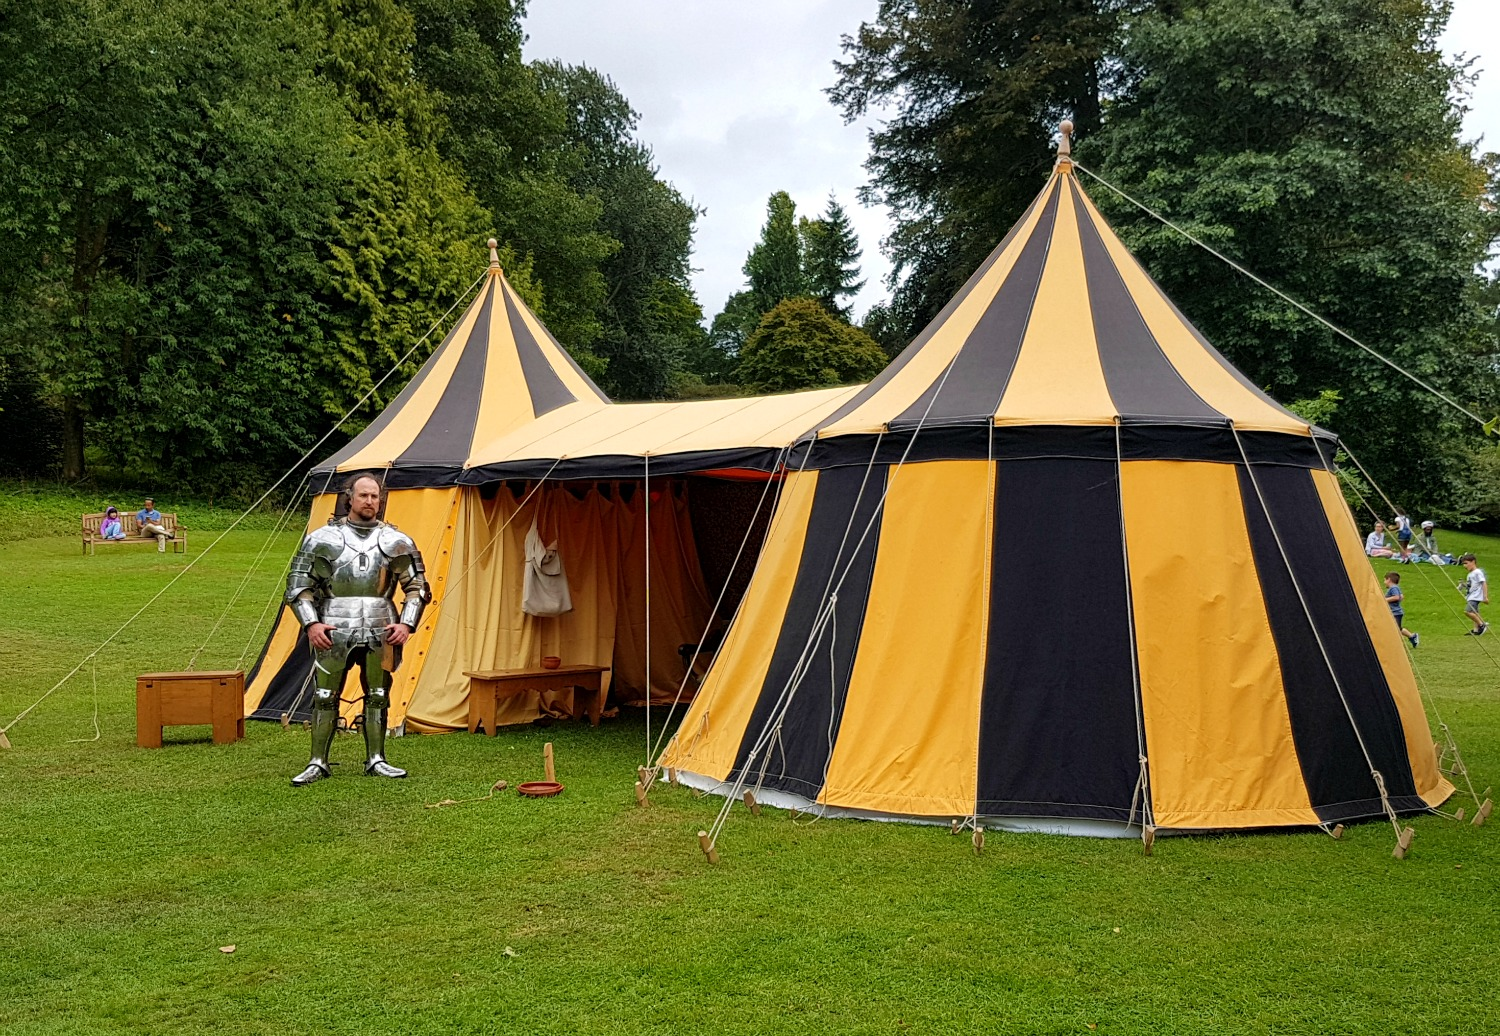 Tents from the medieval village at Hever Castle, Kent - our family day out at Hever Castle with kids